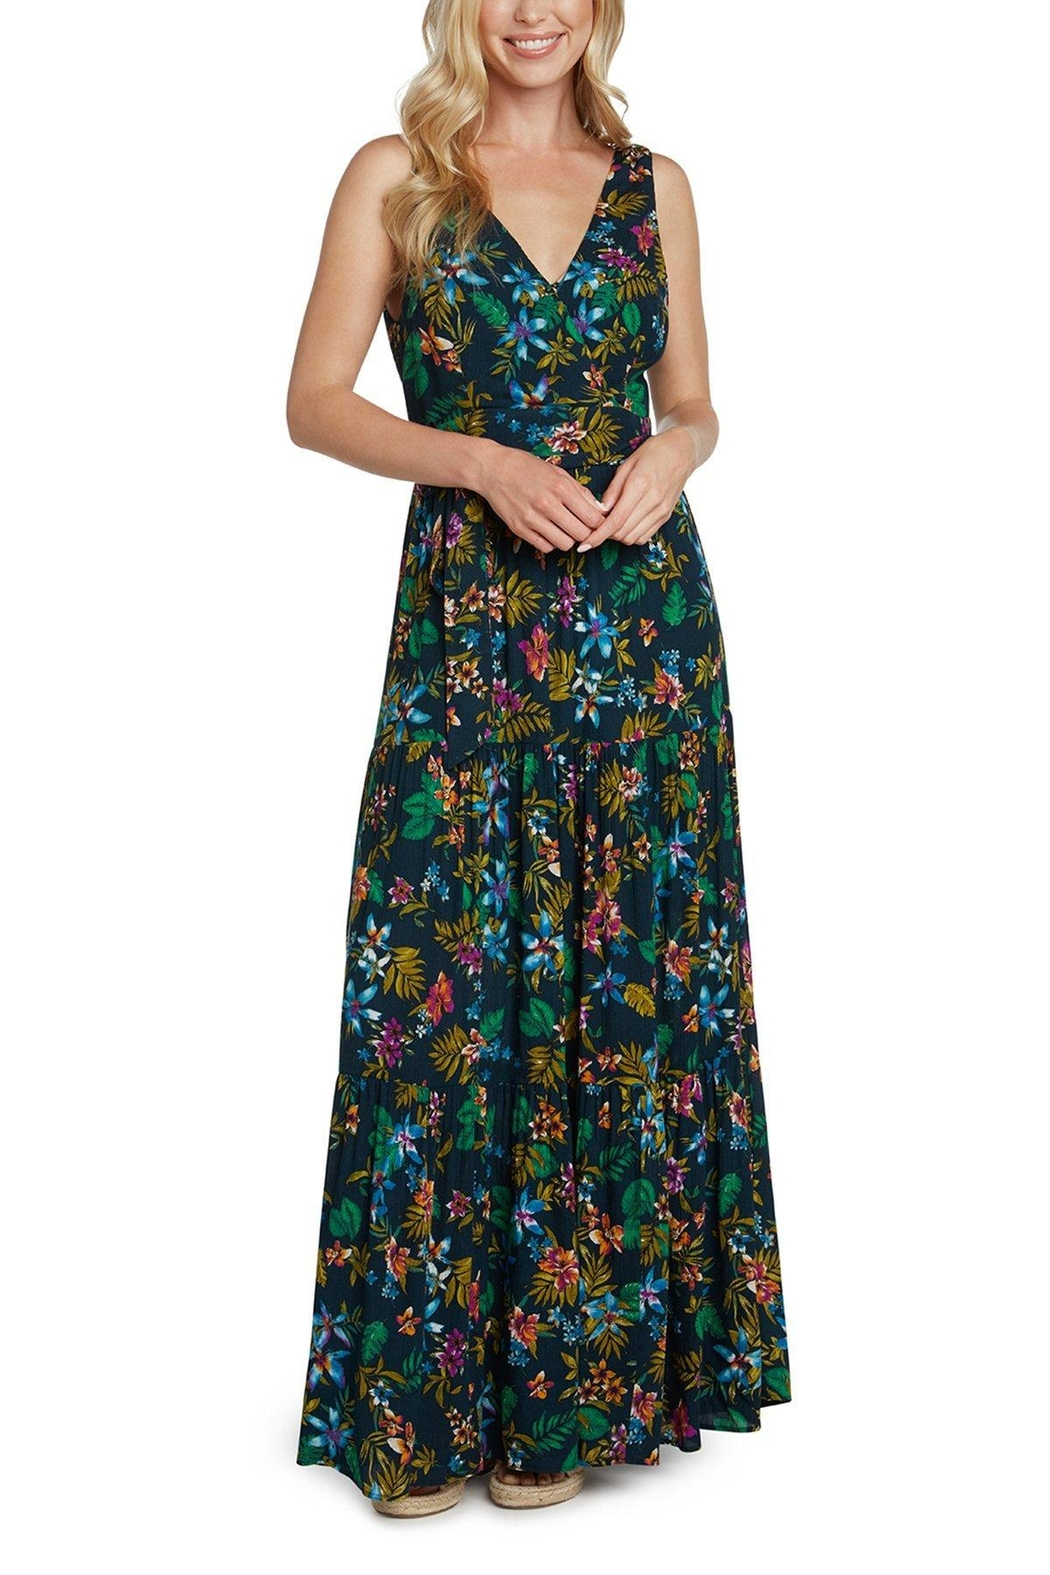 Willow & Clay Martine Maxi Dress - Main Image